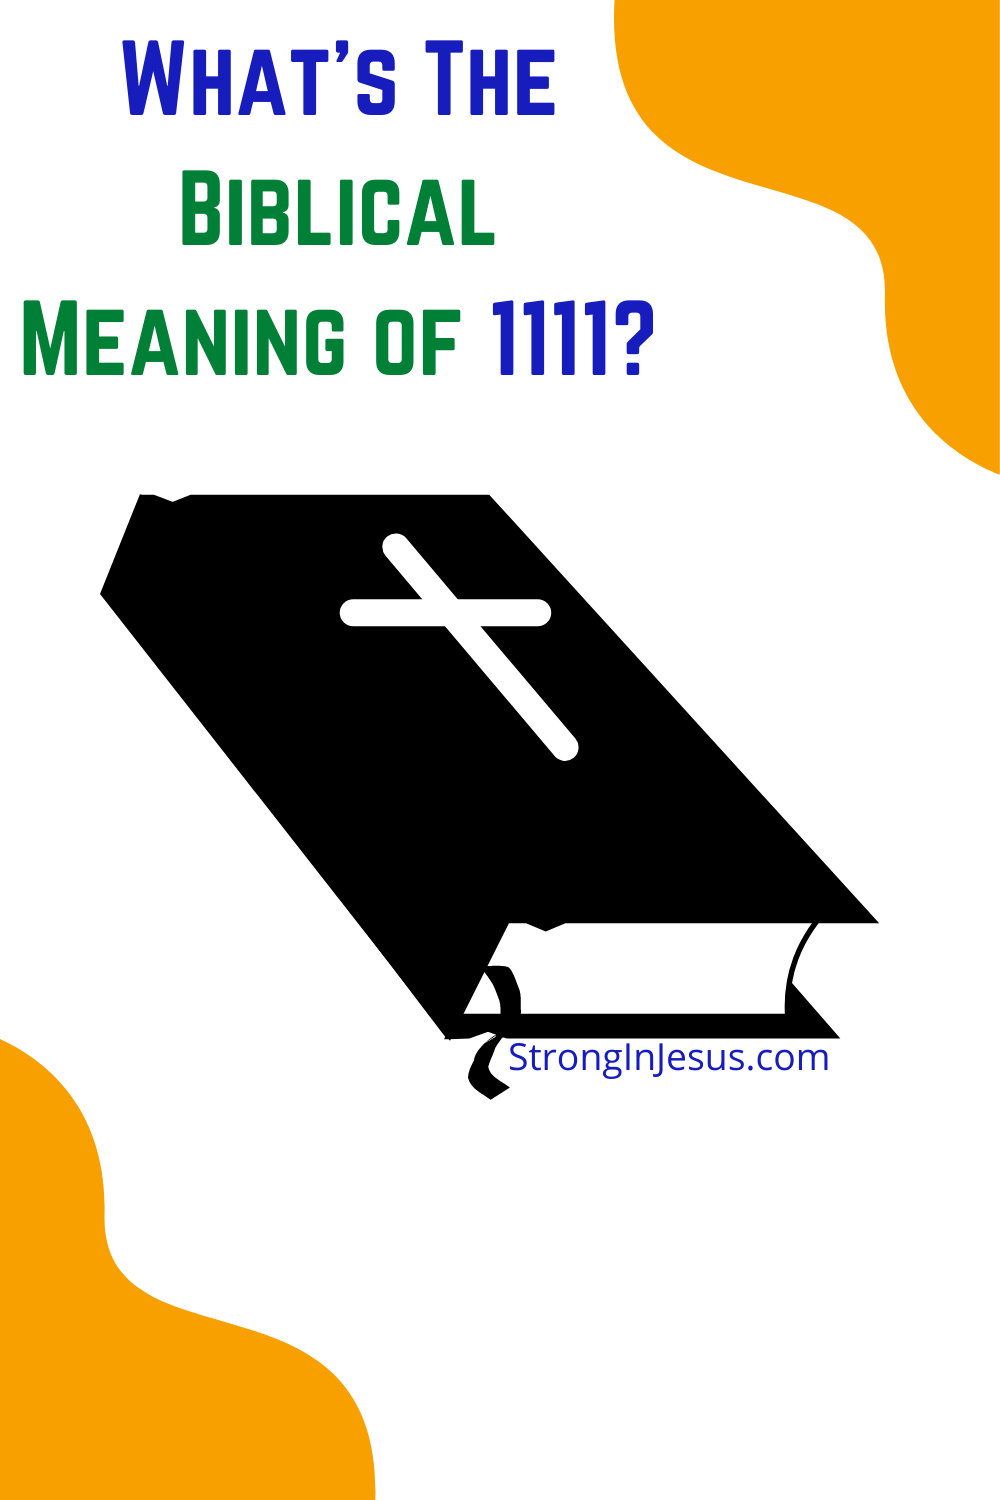 Biblical Meaning of 1111 Important Bible Study